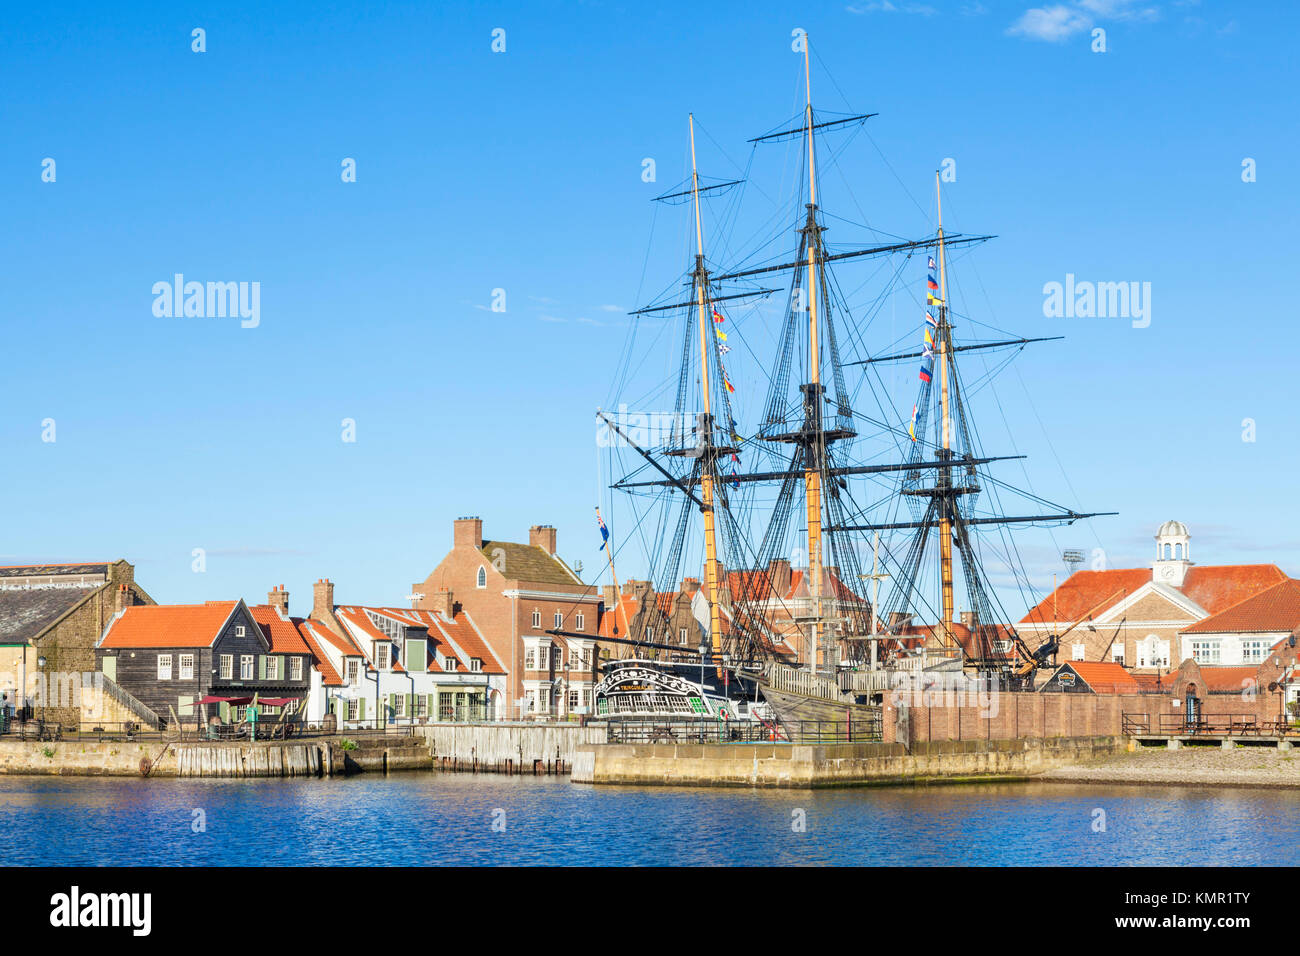 england hartlepool england hartlepool marina H M S Trincomalee a napoleonic war navy frigate restored as a living - Stock Image